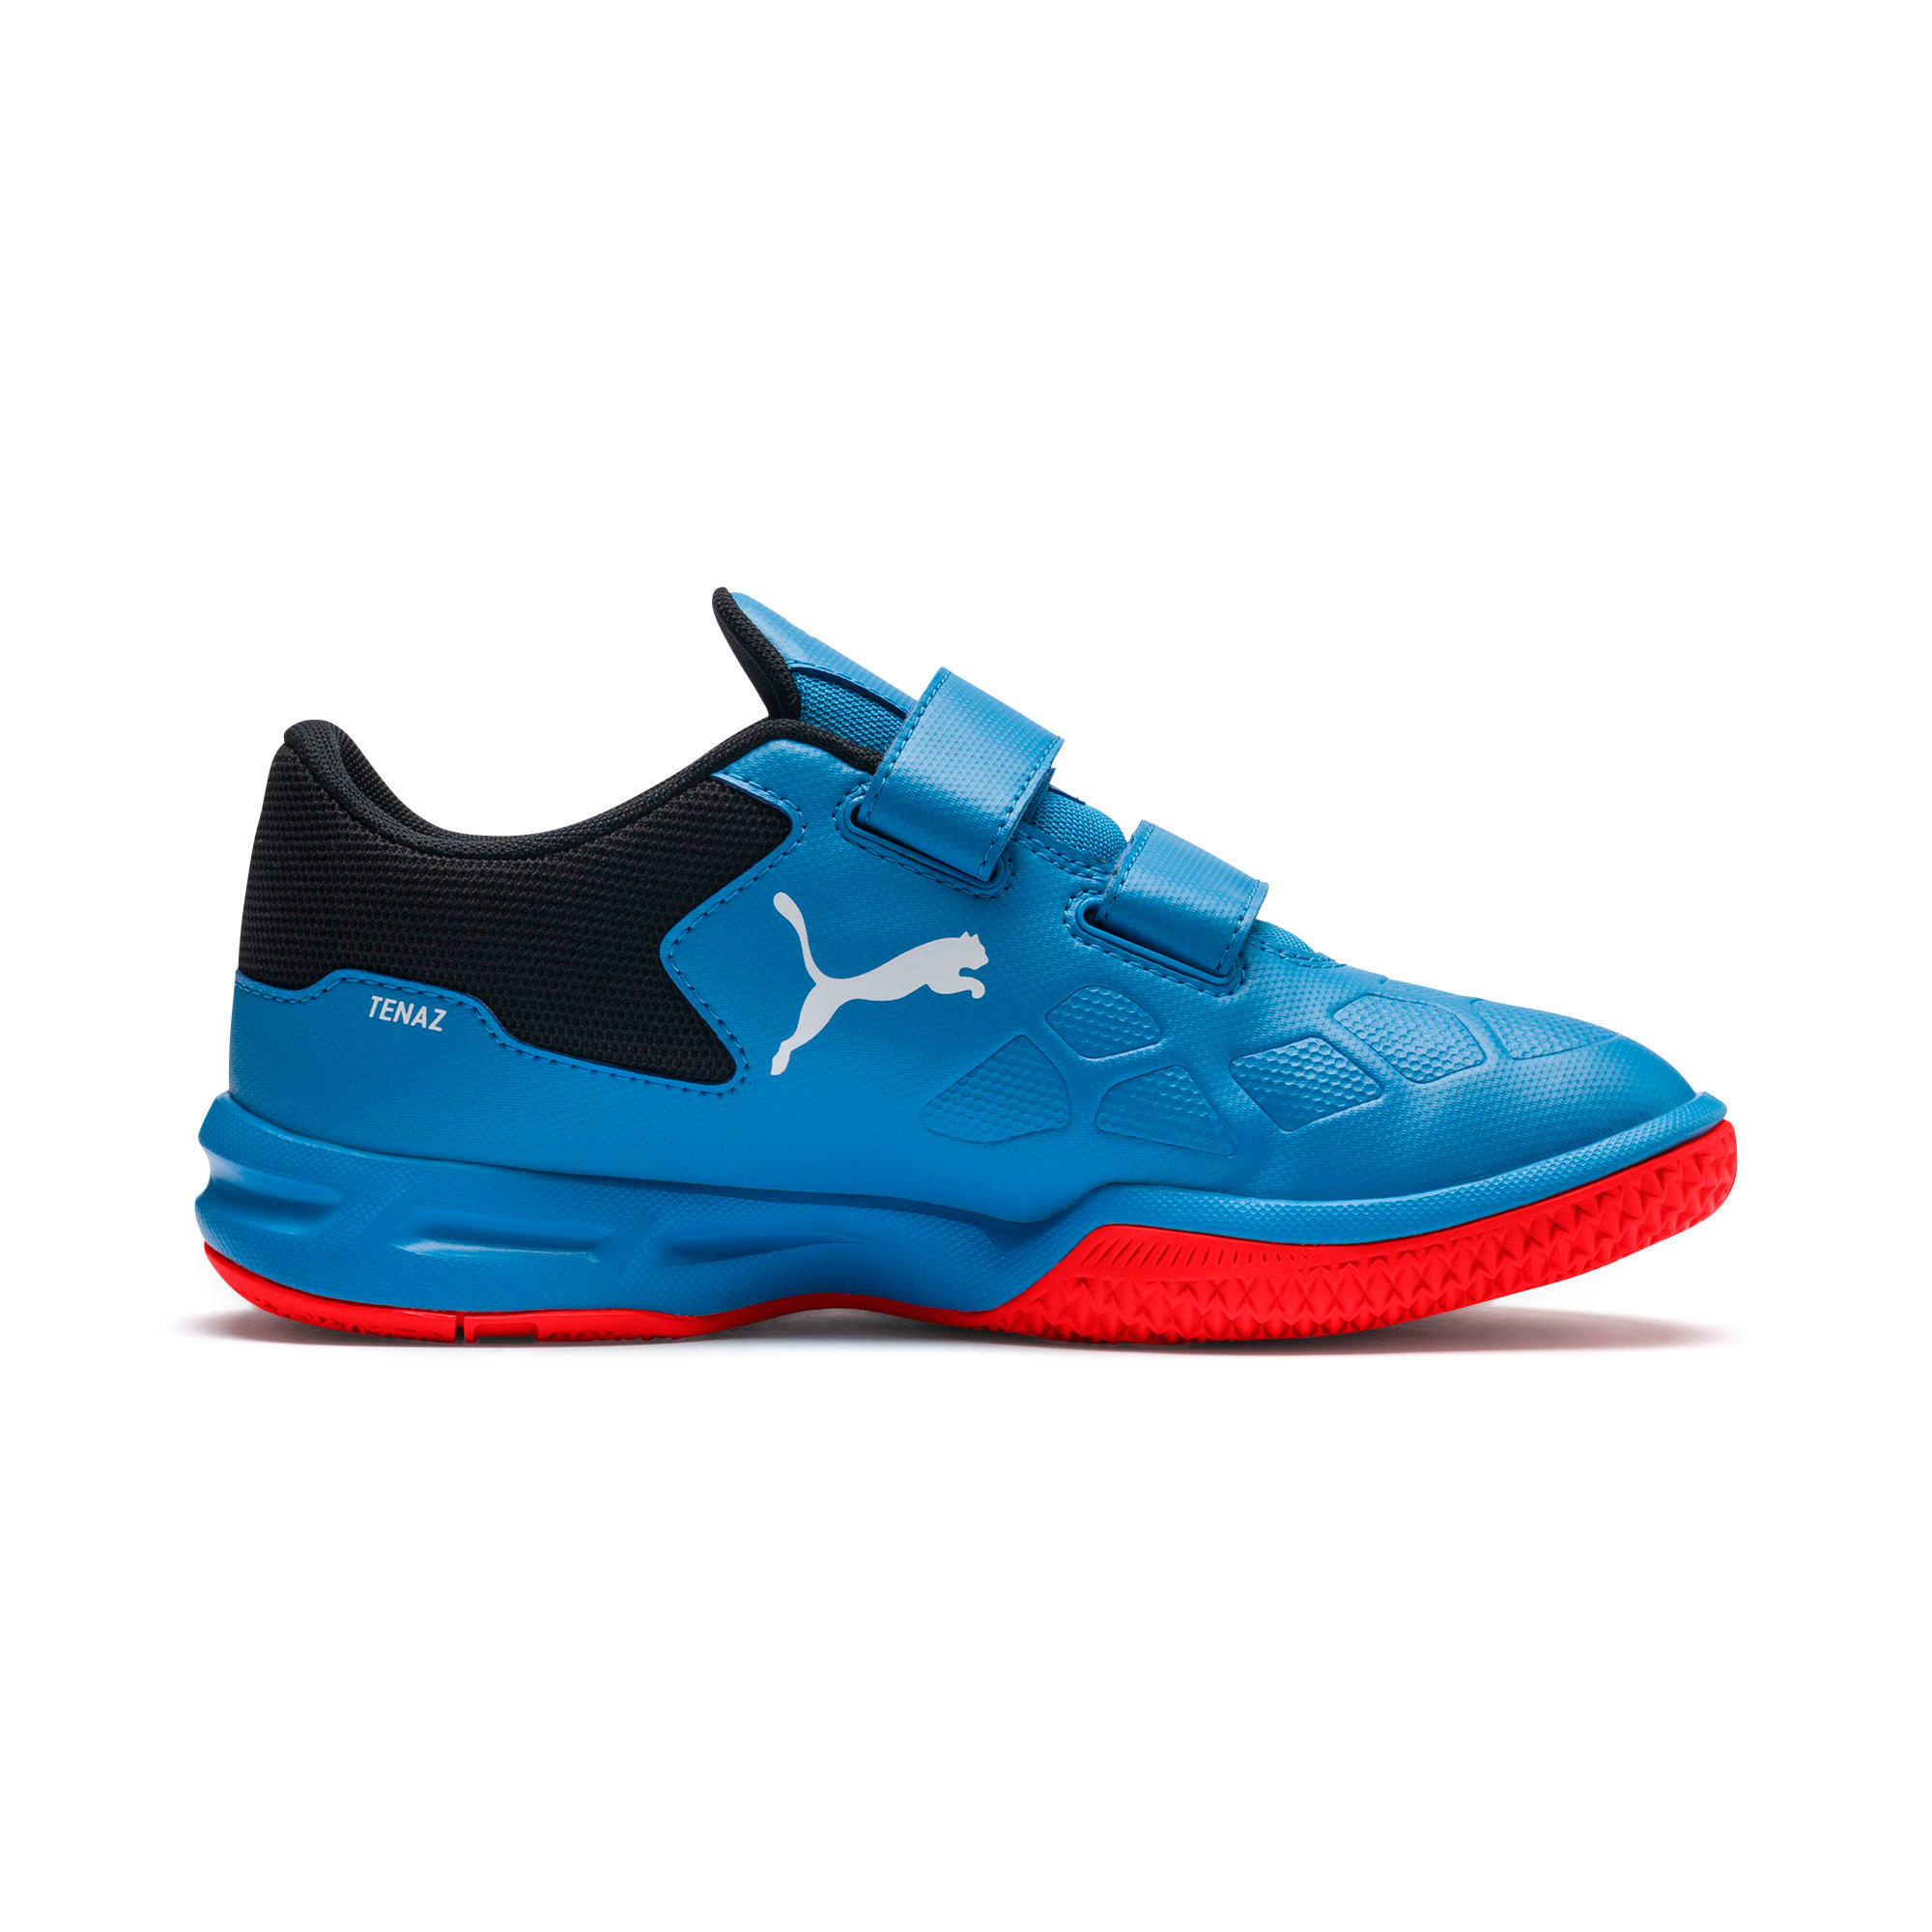 Thumbnail 2 of Tenaz V Youth Trainers, Bleu Azur-White-Black-Red, medium-IND